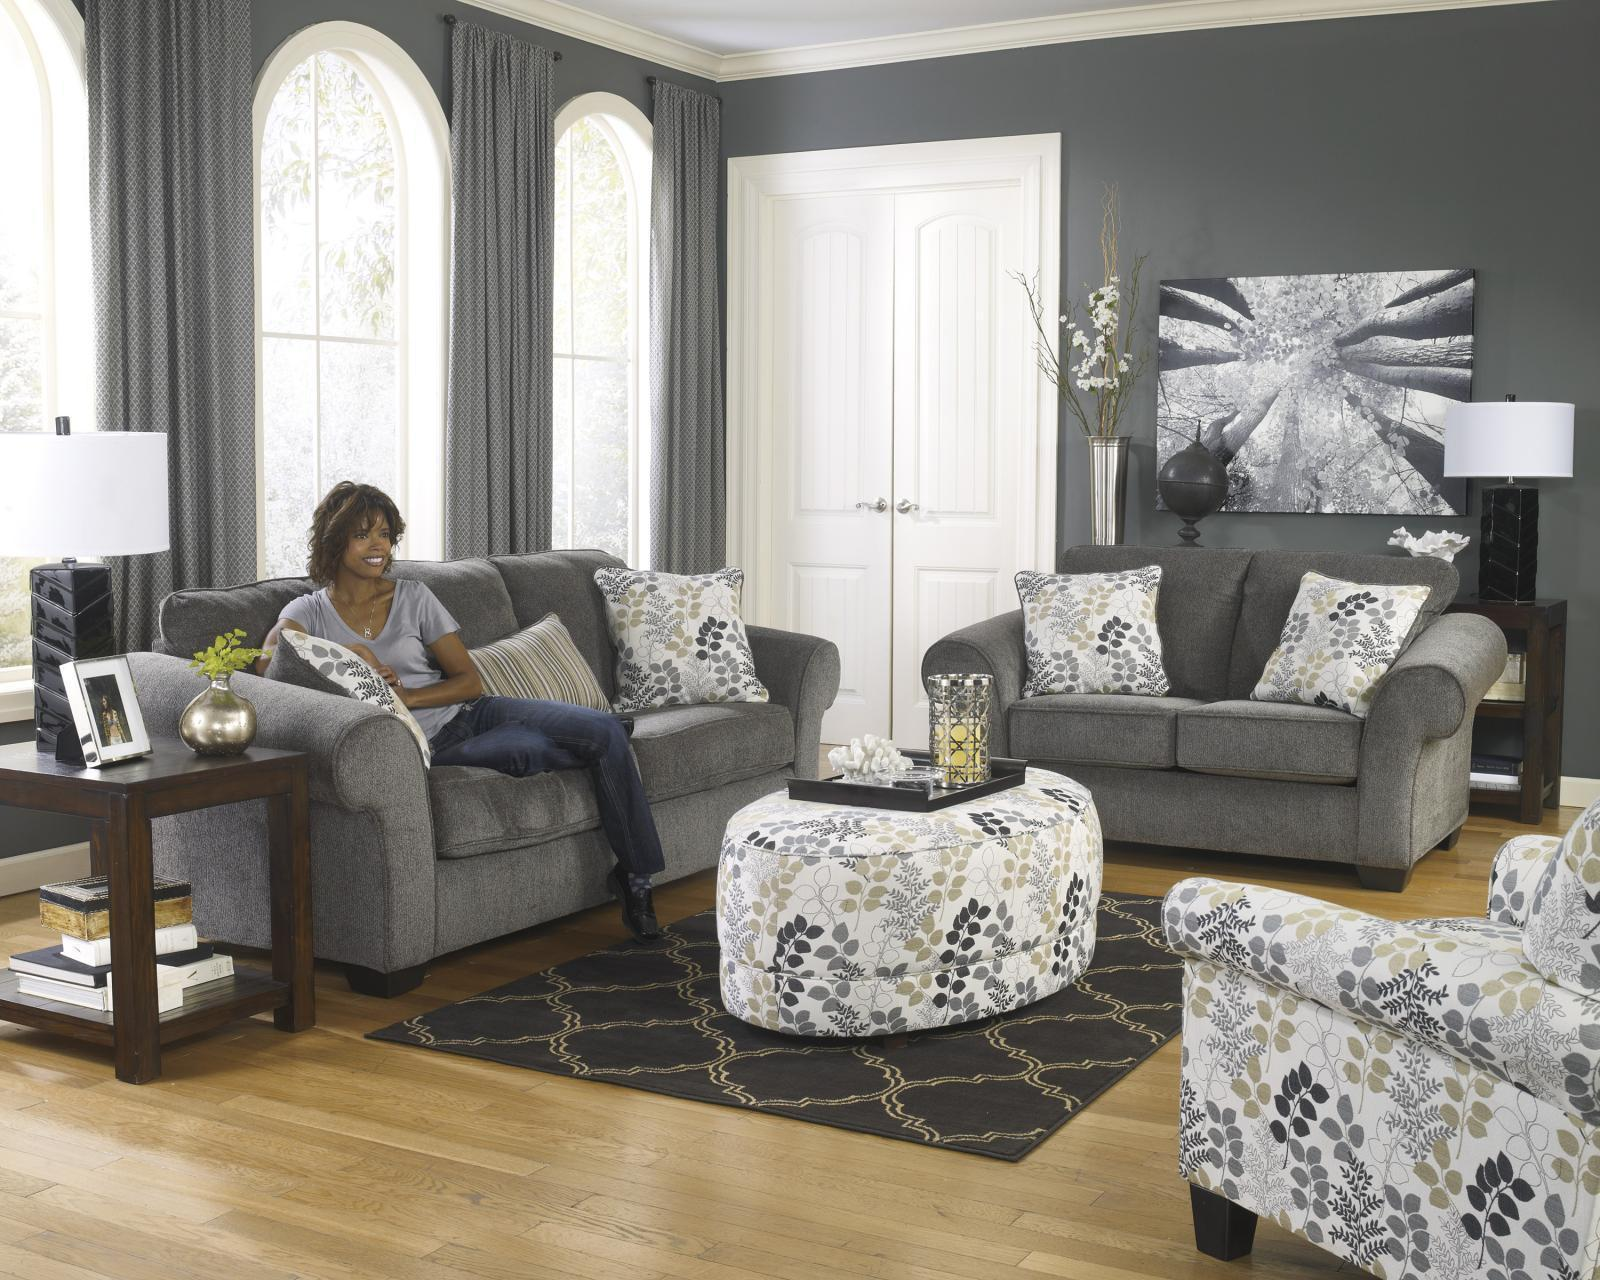 Ashley Makonnen Living Room Set 4pcs in Charcoal Upholstery Fabric Contemporary